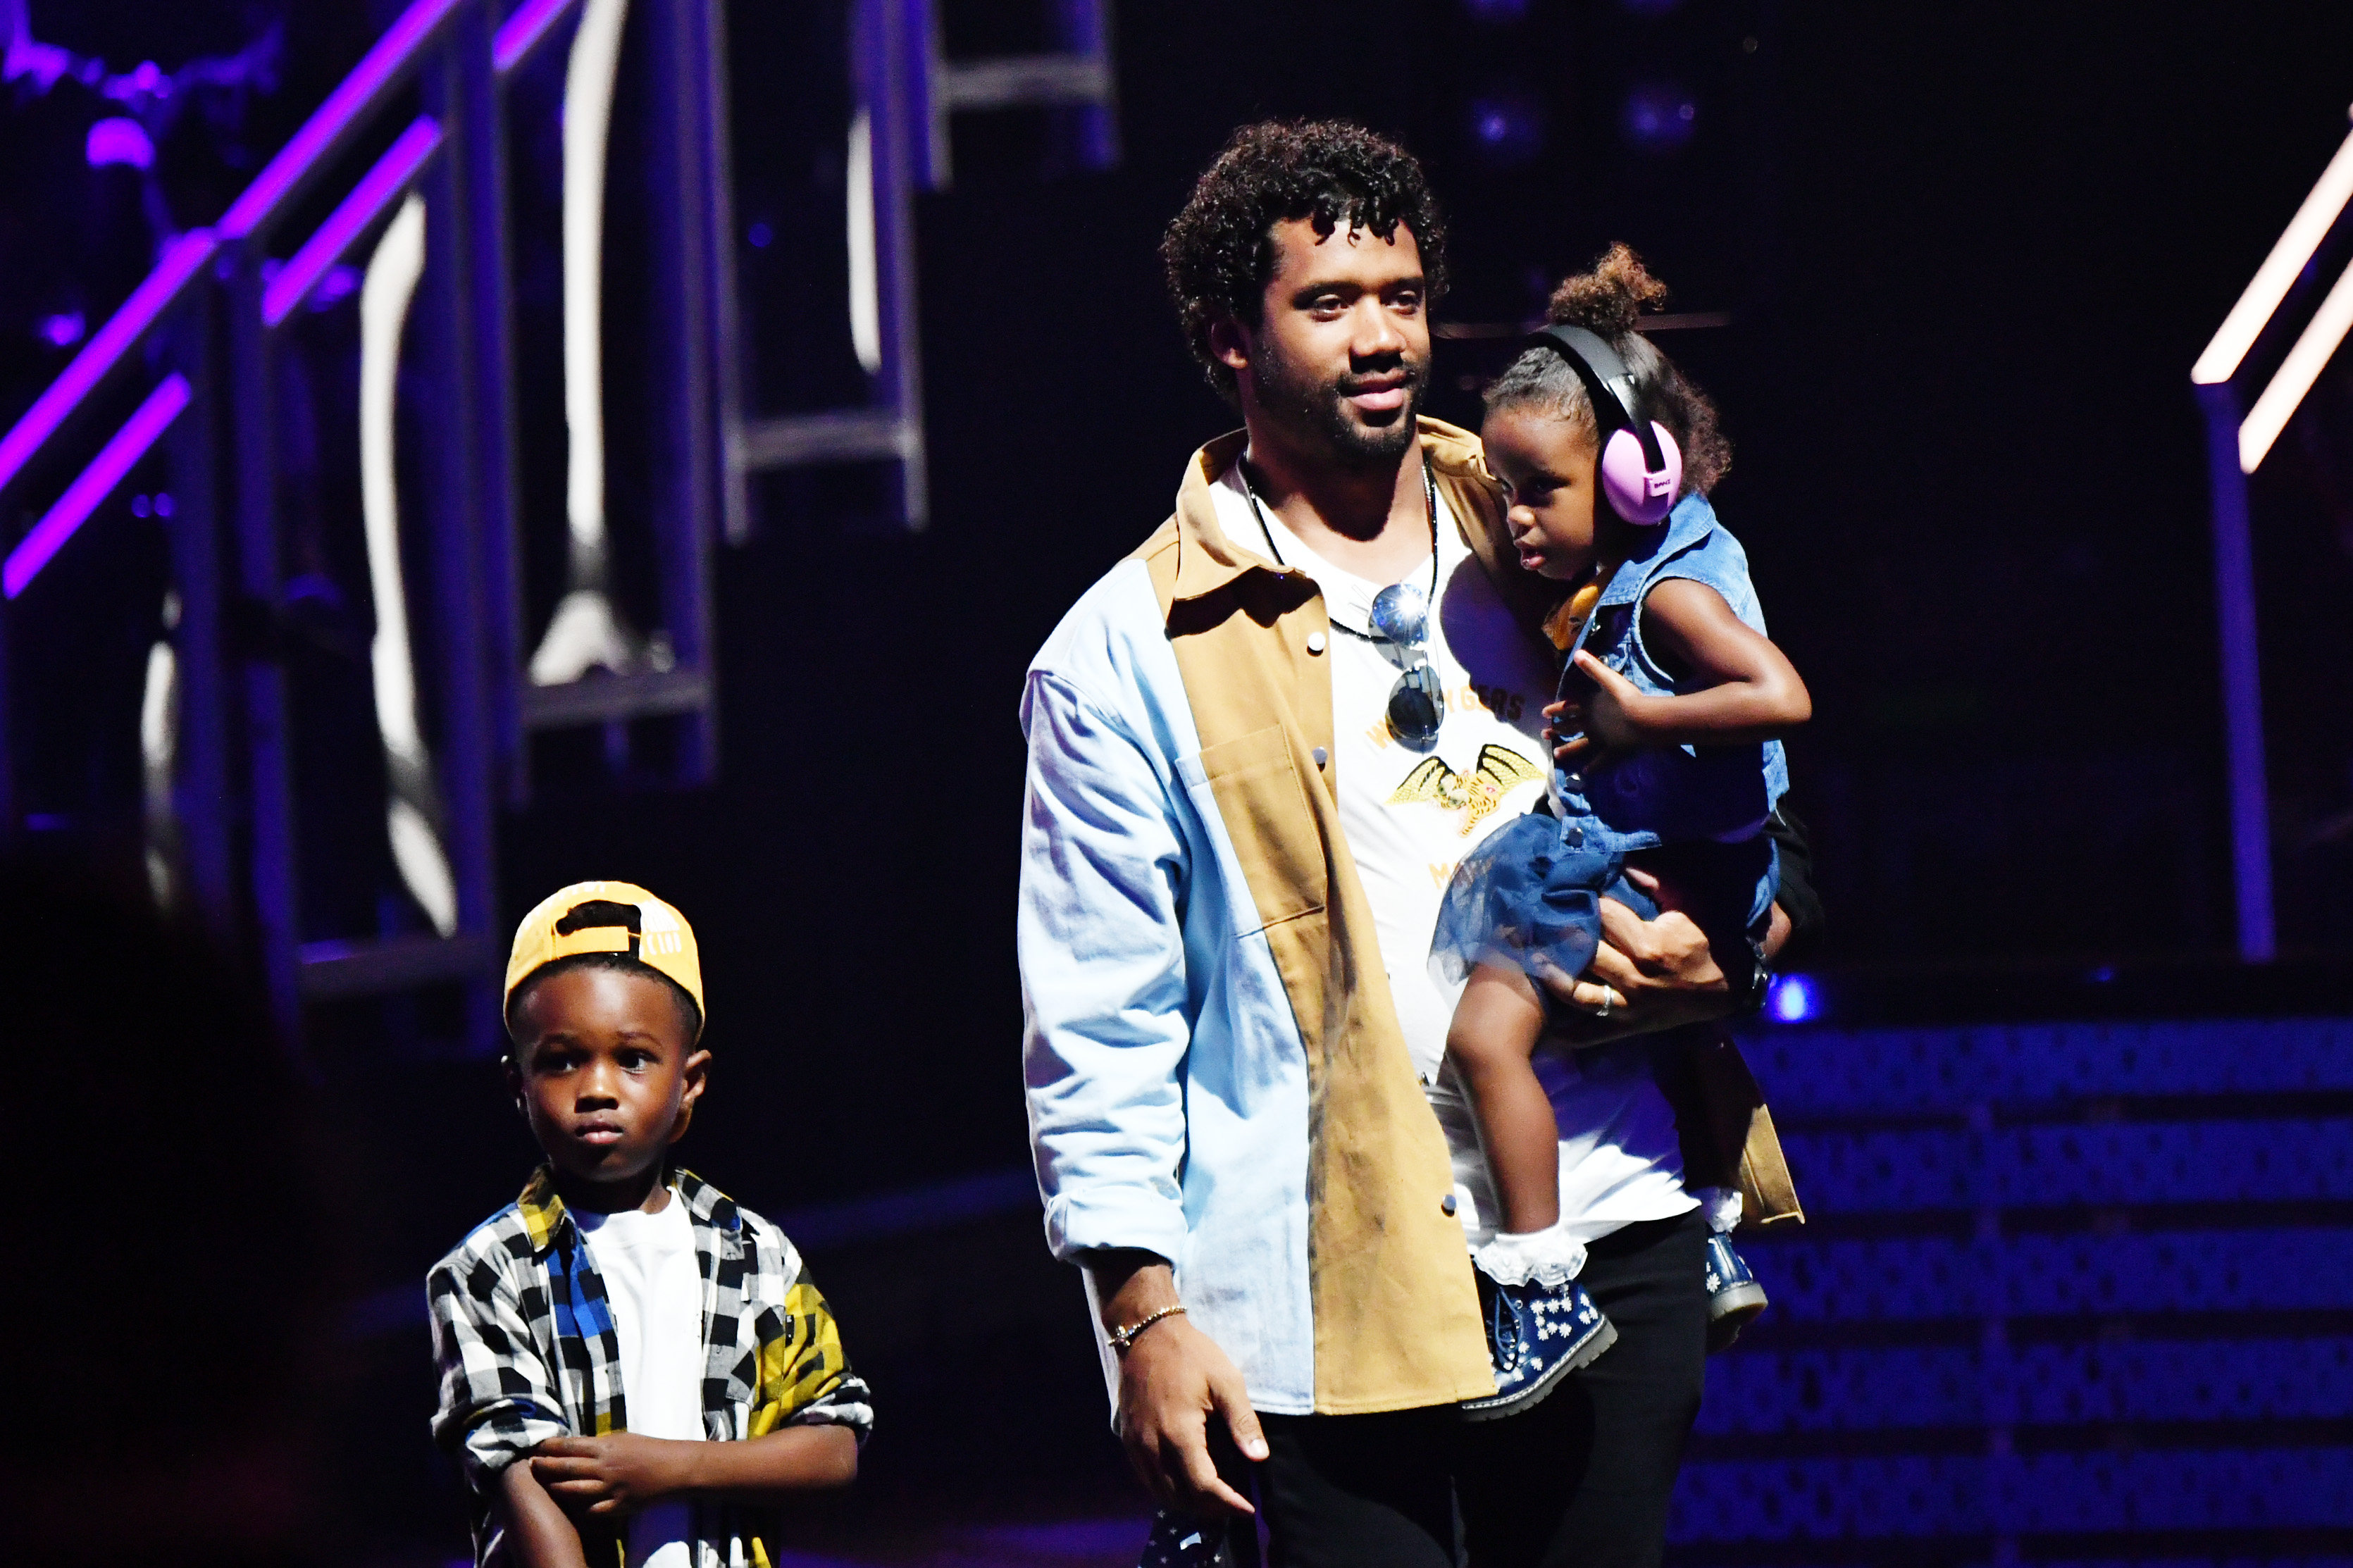 Russell Wilson walks out on to a stage with his kids